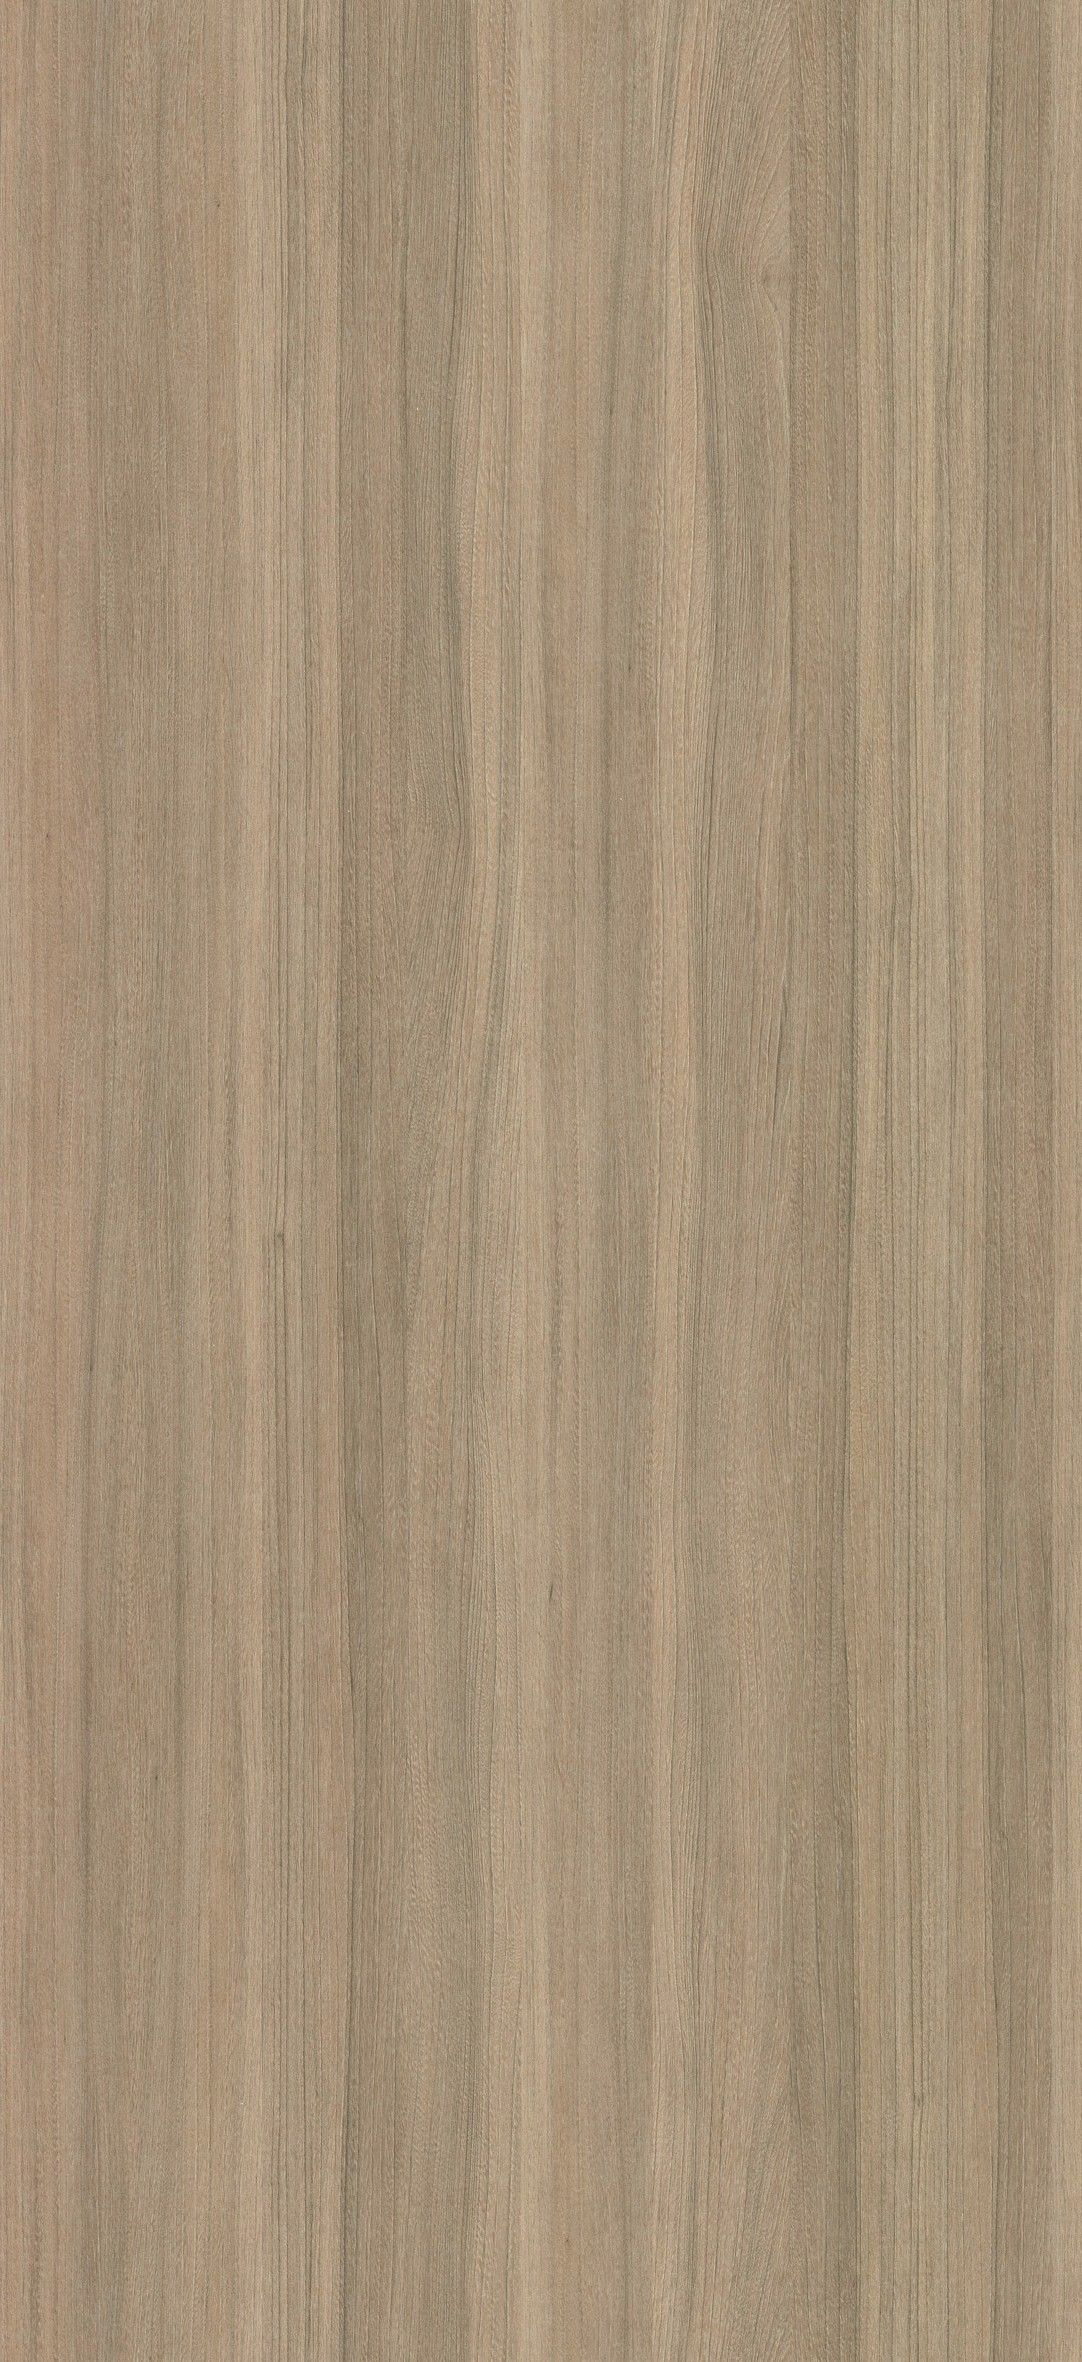 Pin By Lee On B 材质 Pinterest Wood Wood Texture And